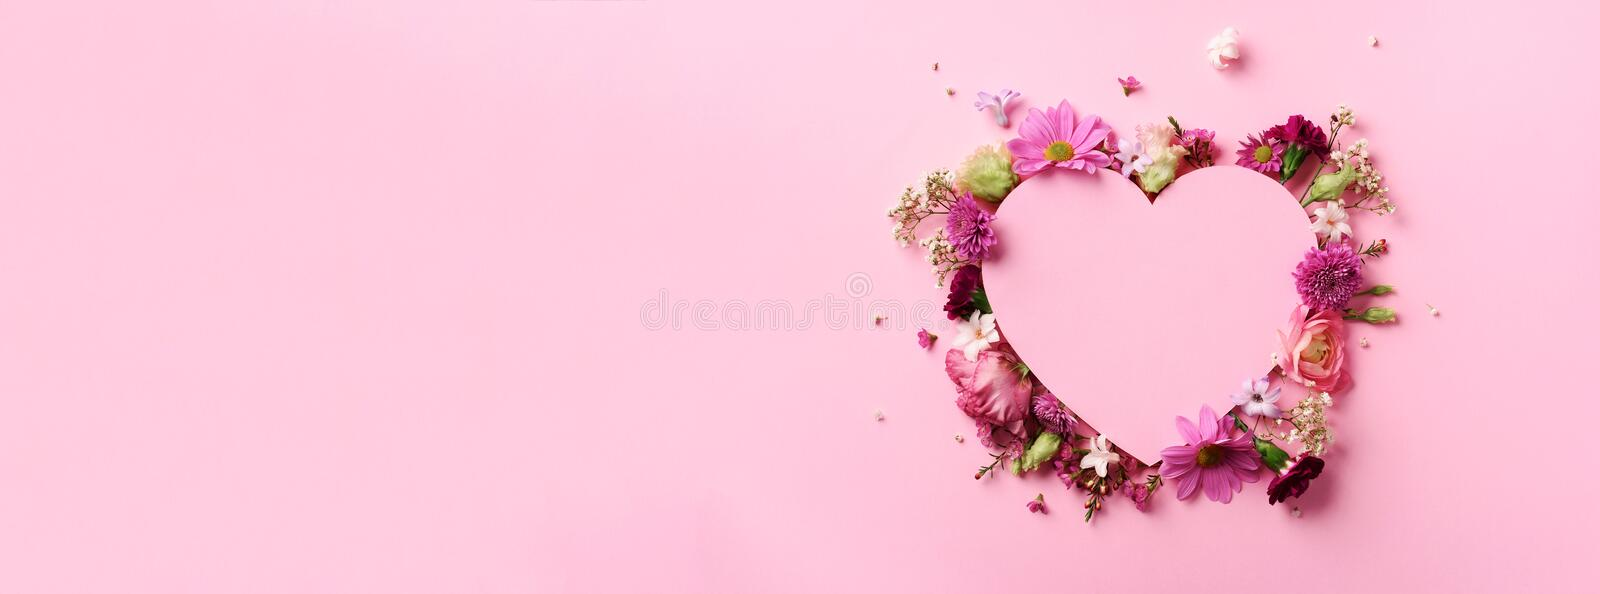 Creative layout with pink flowers, paper heart over punchy pastel background. Top view, flat lay. Spring, summer or garden concept. Present for Woman day stock image